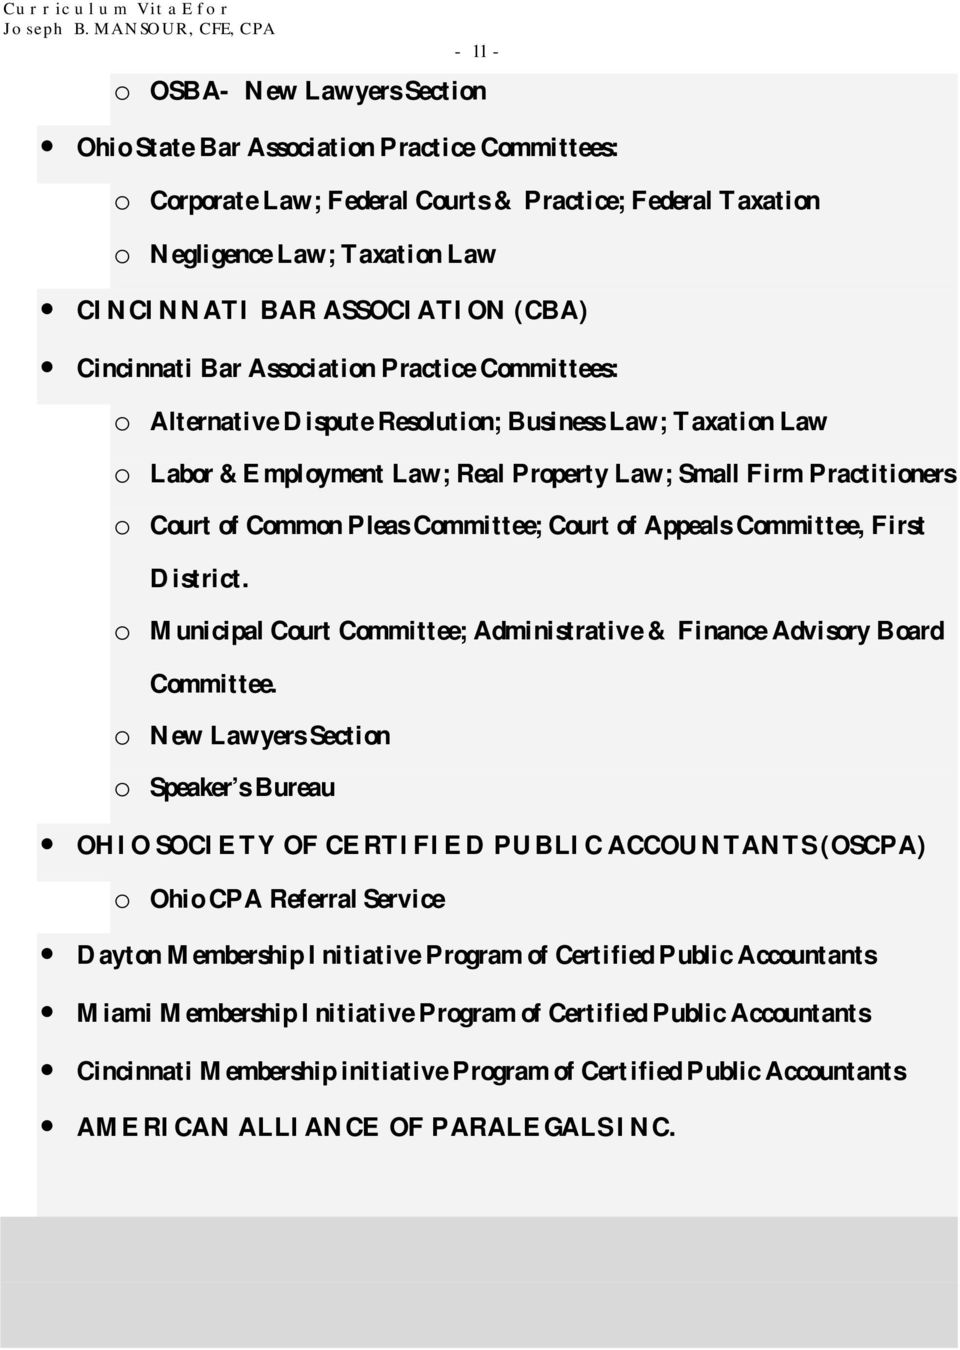 Court of Common Pleas Committee; Court of Appeals Committee, First District. o Municipal Court Committee; Administrative & Finance Advisory Board Committee.